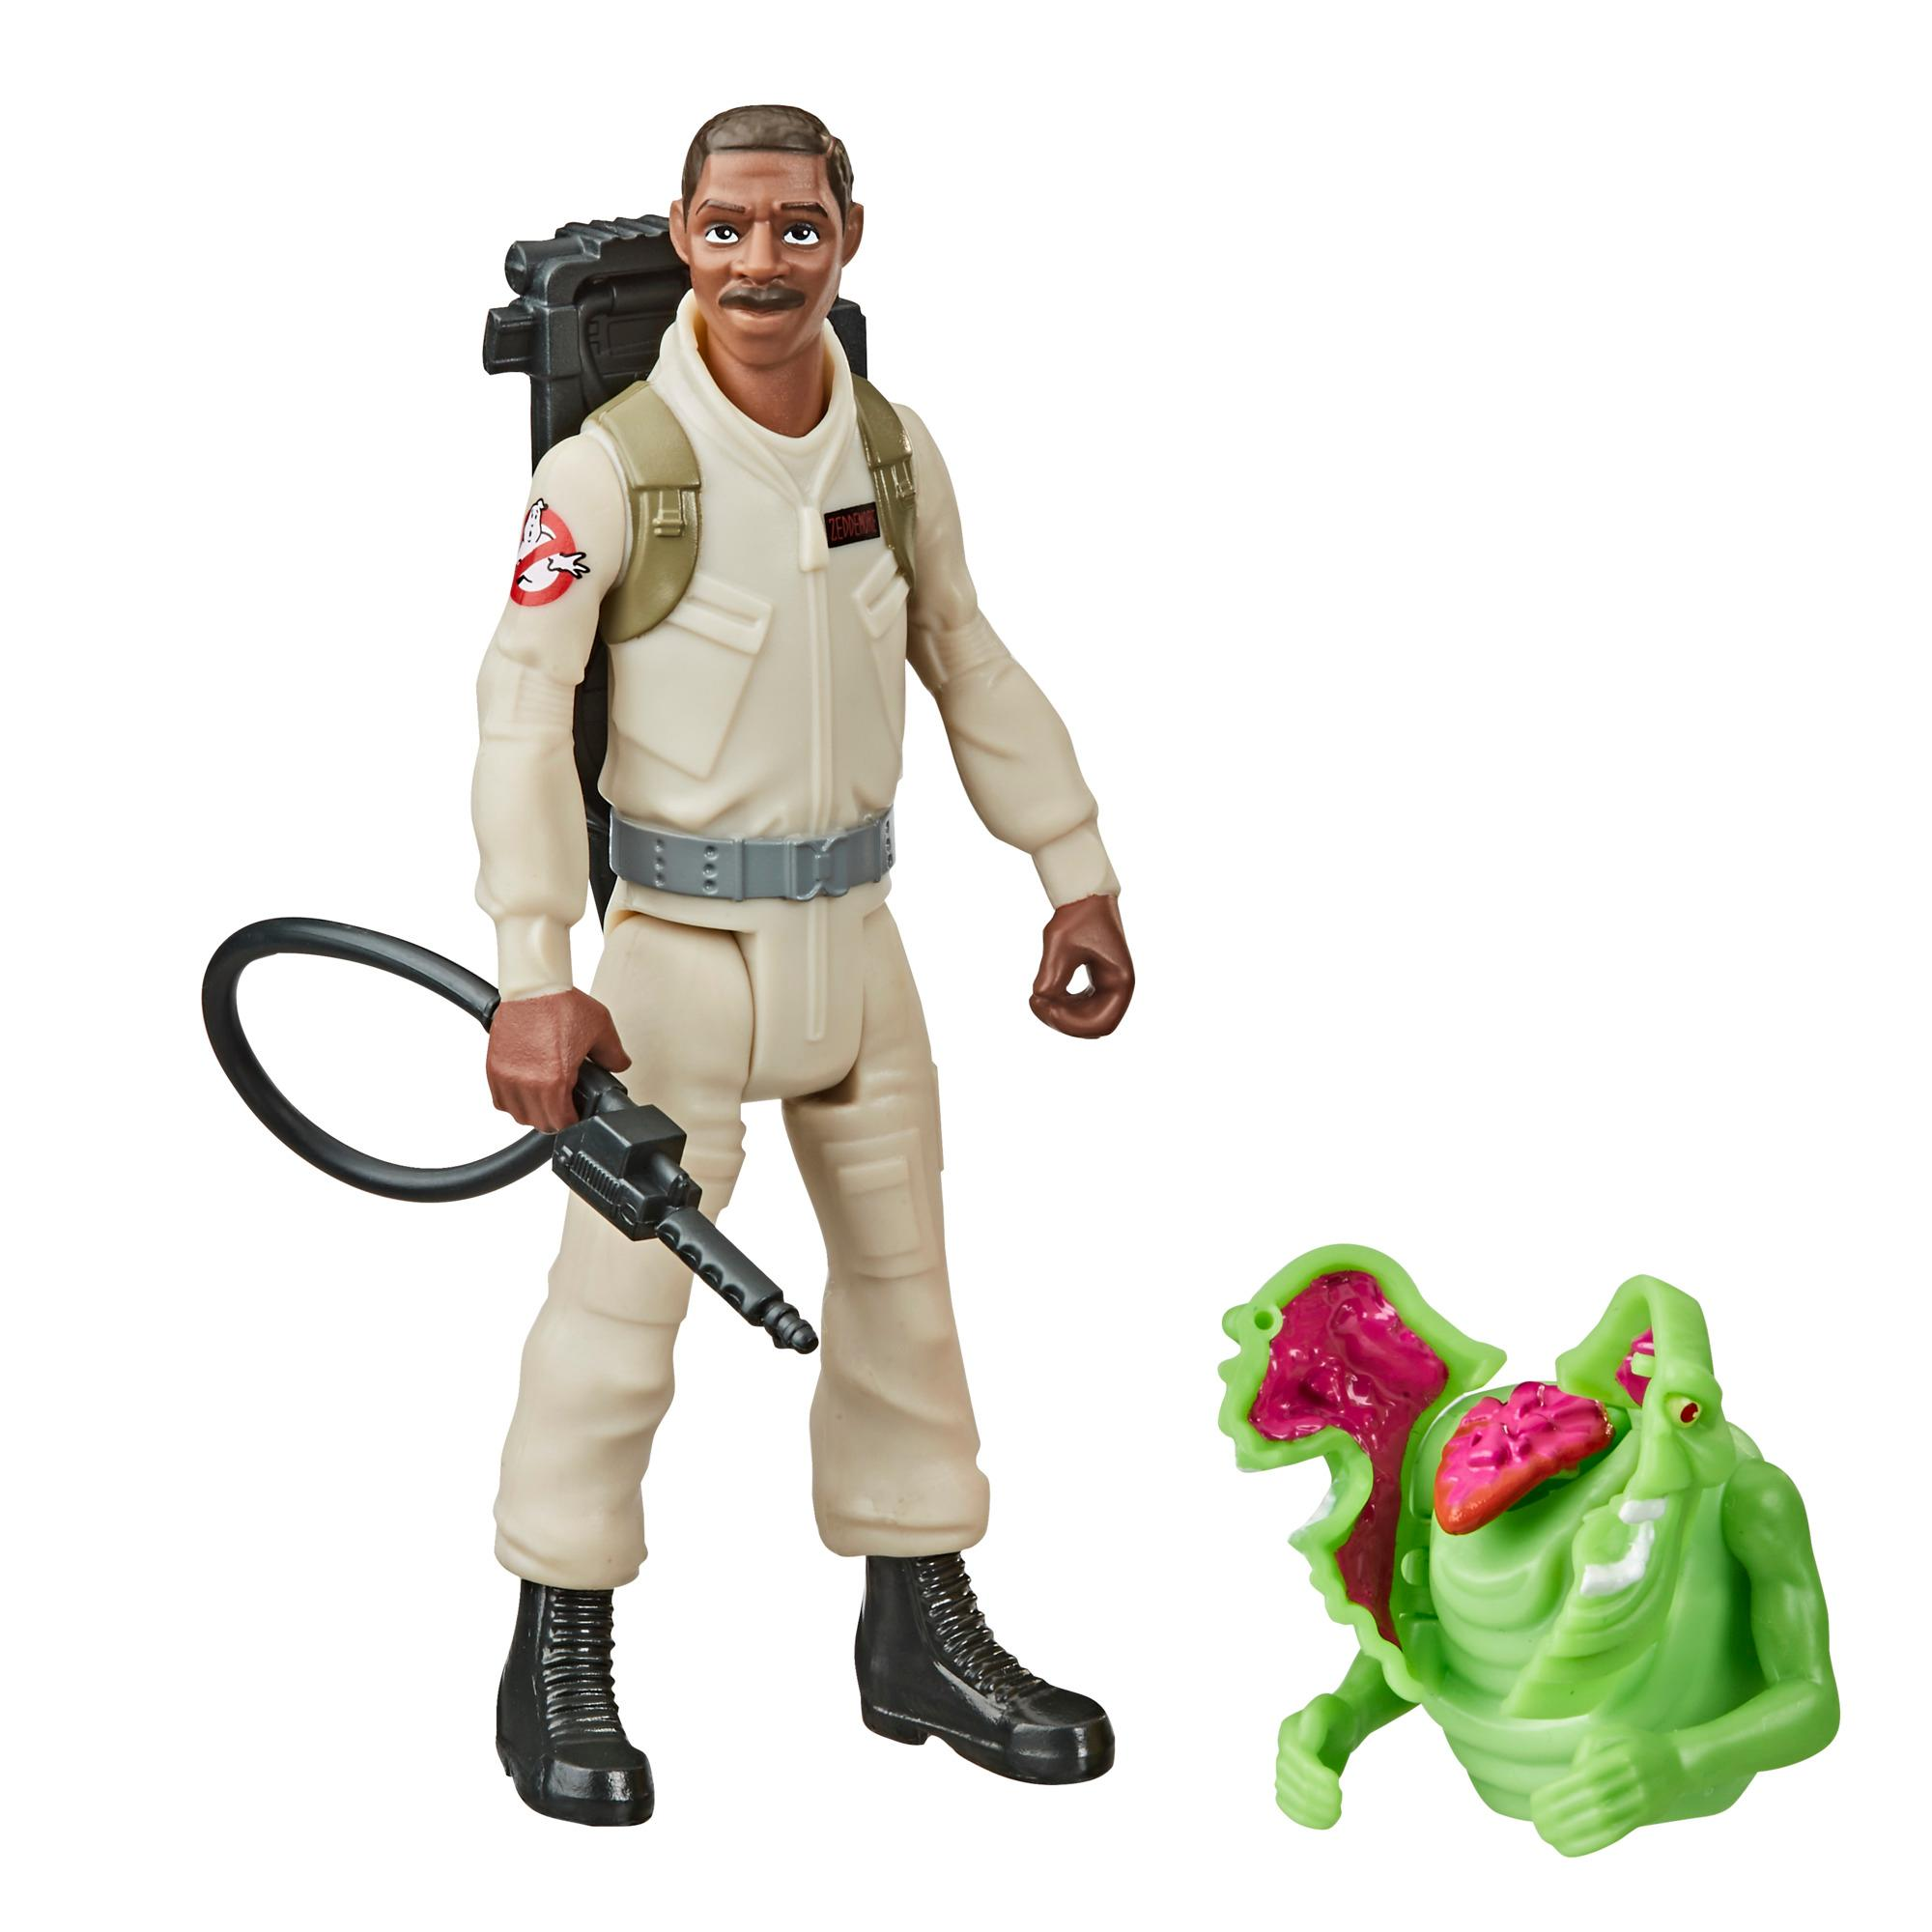 Ghostbusters Fright Features Winston Zeddemore Figure with Interactive Slimer Figure and Accessory, Kids Ages 4 and Up